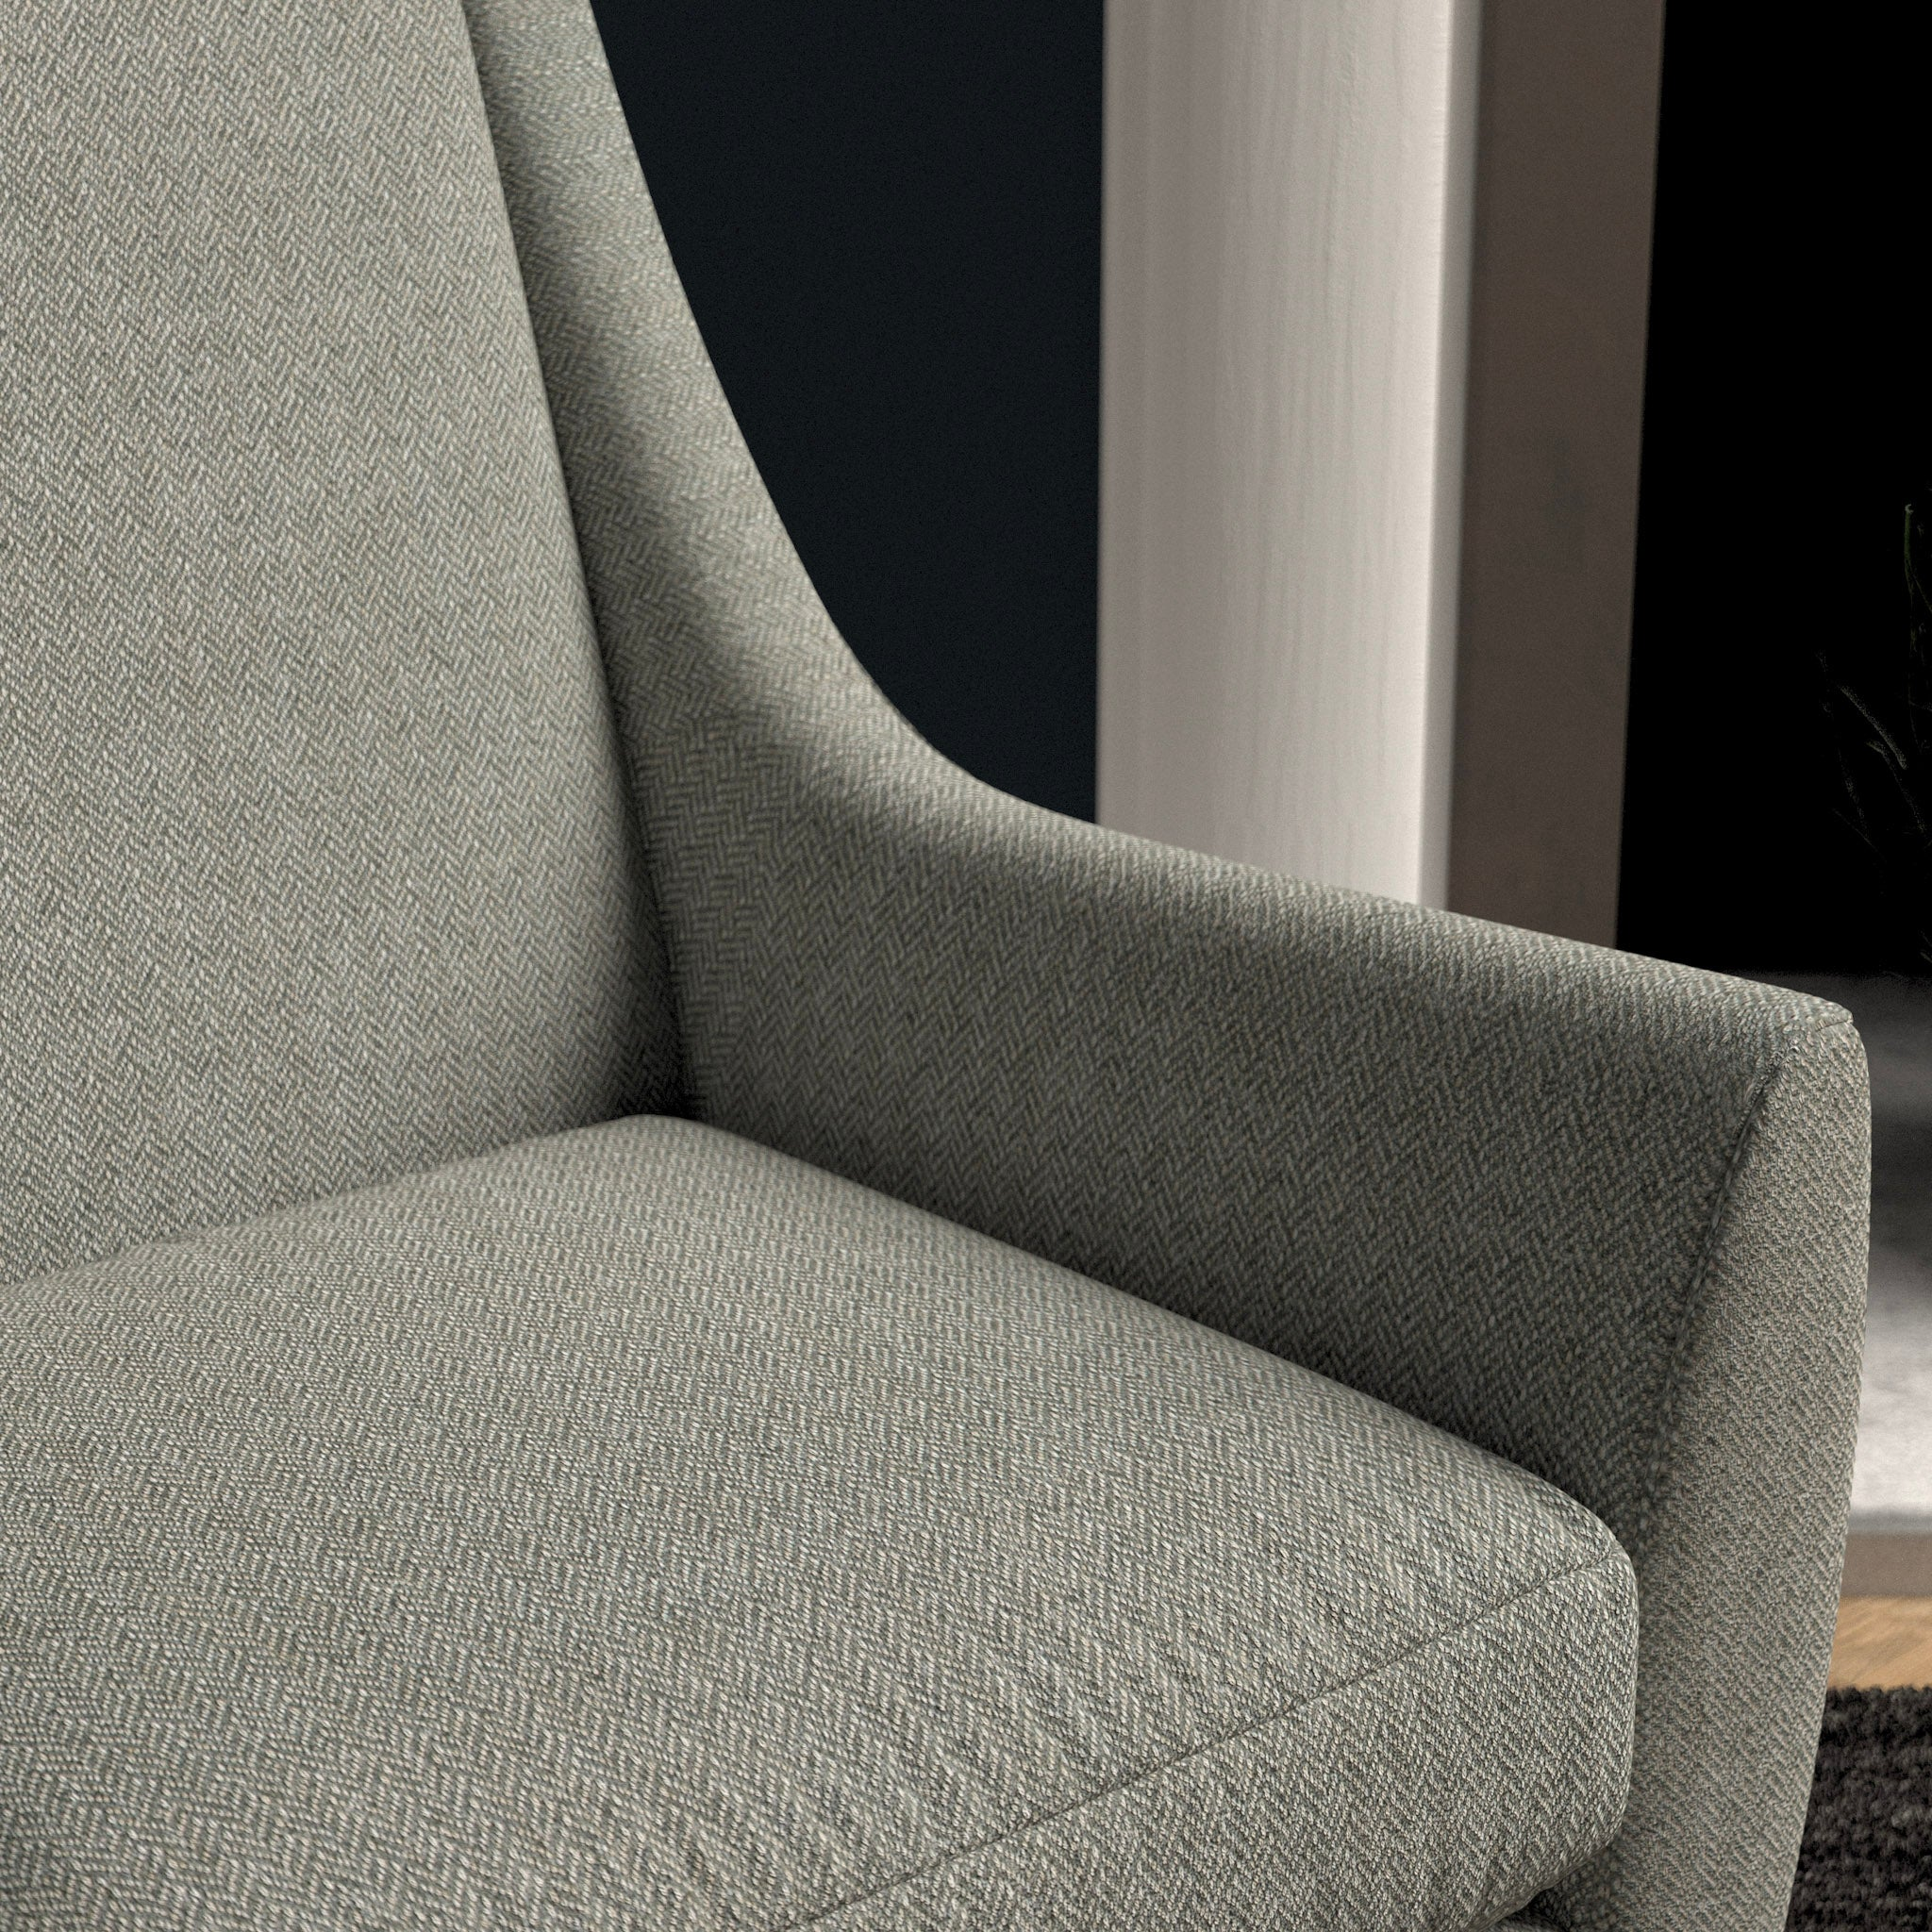 Chair in a dark grey herringbone wool upholstery fabric